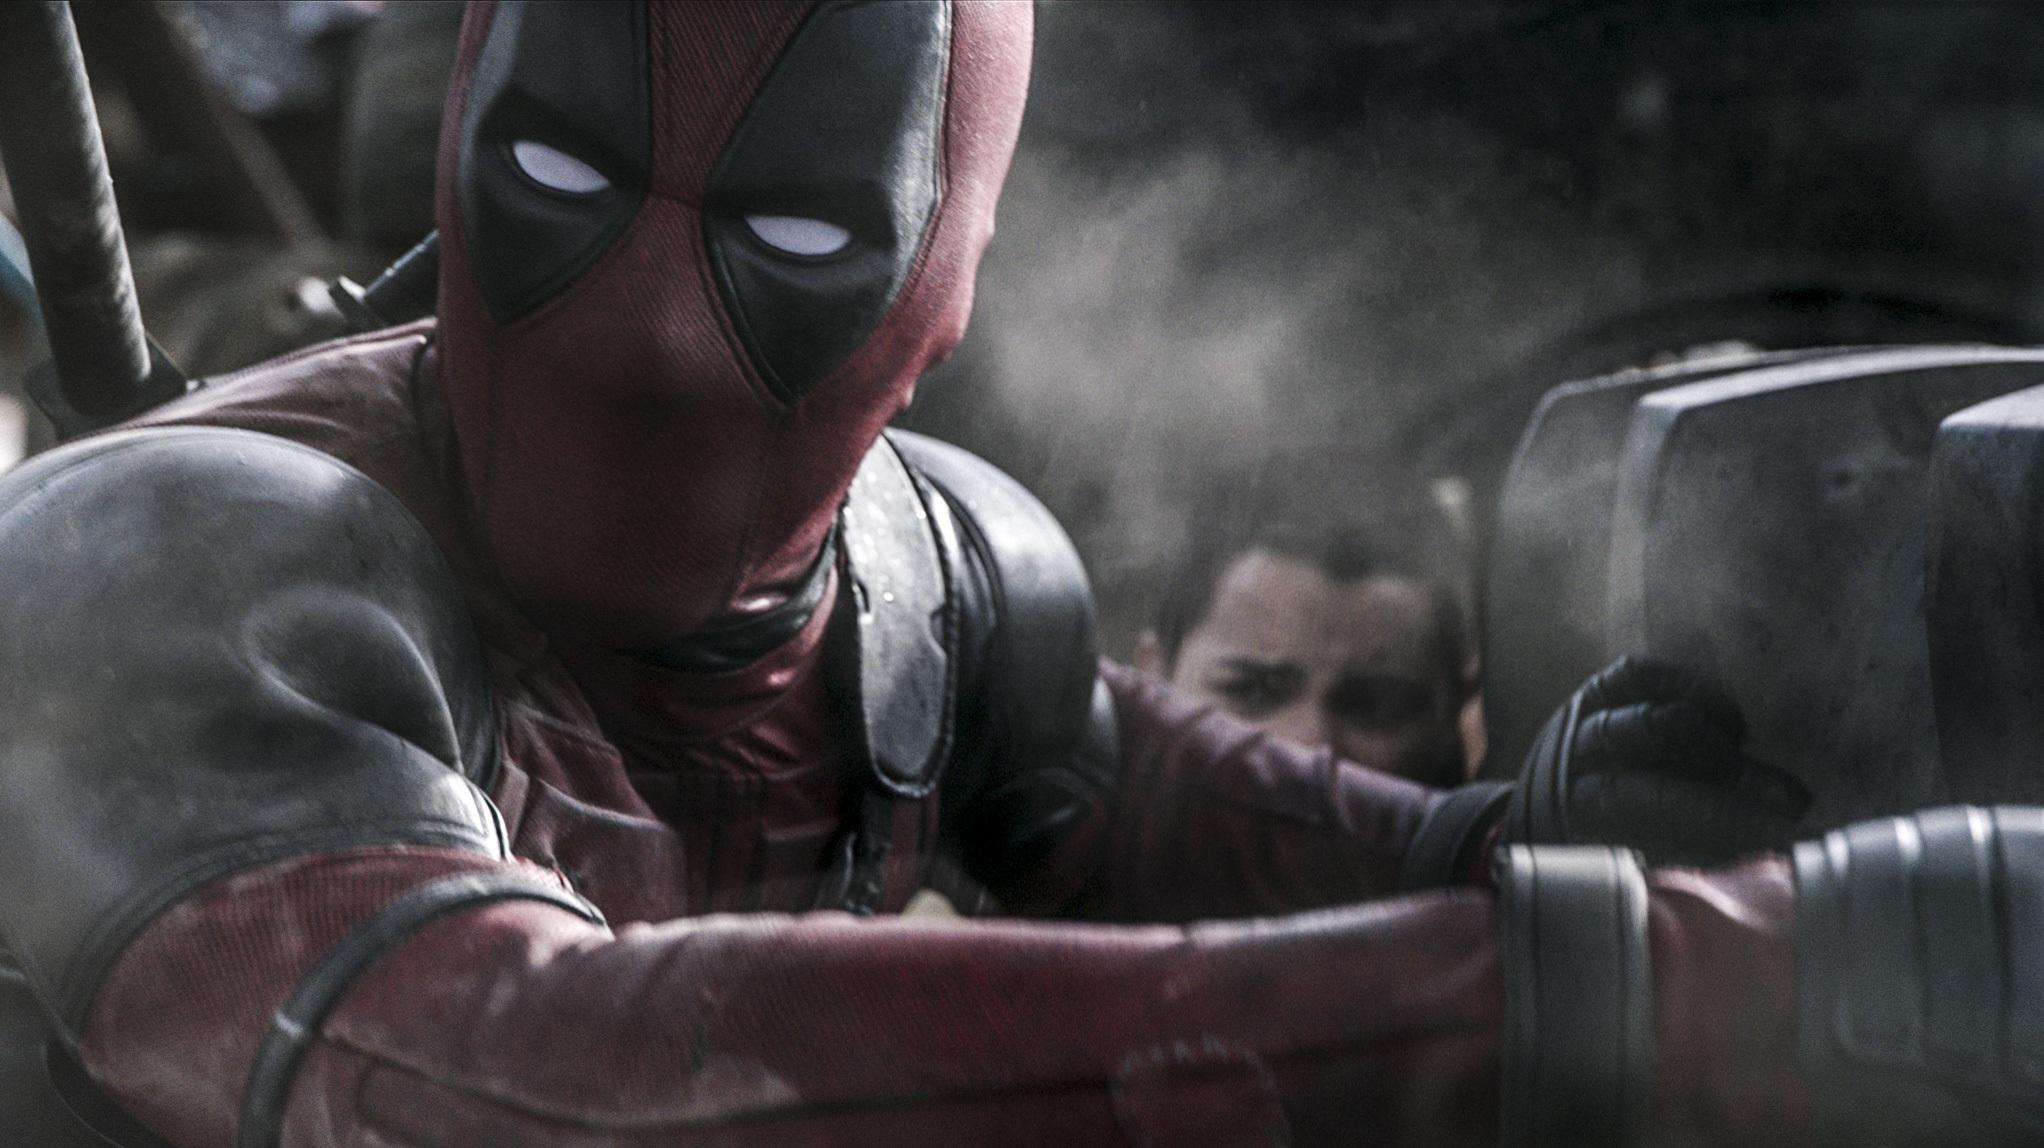 DEADPOOL Sequel Expected To Start Filming Early Next Year; Fox Happy With X-MEN: APOCALYPSE Box Office